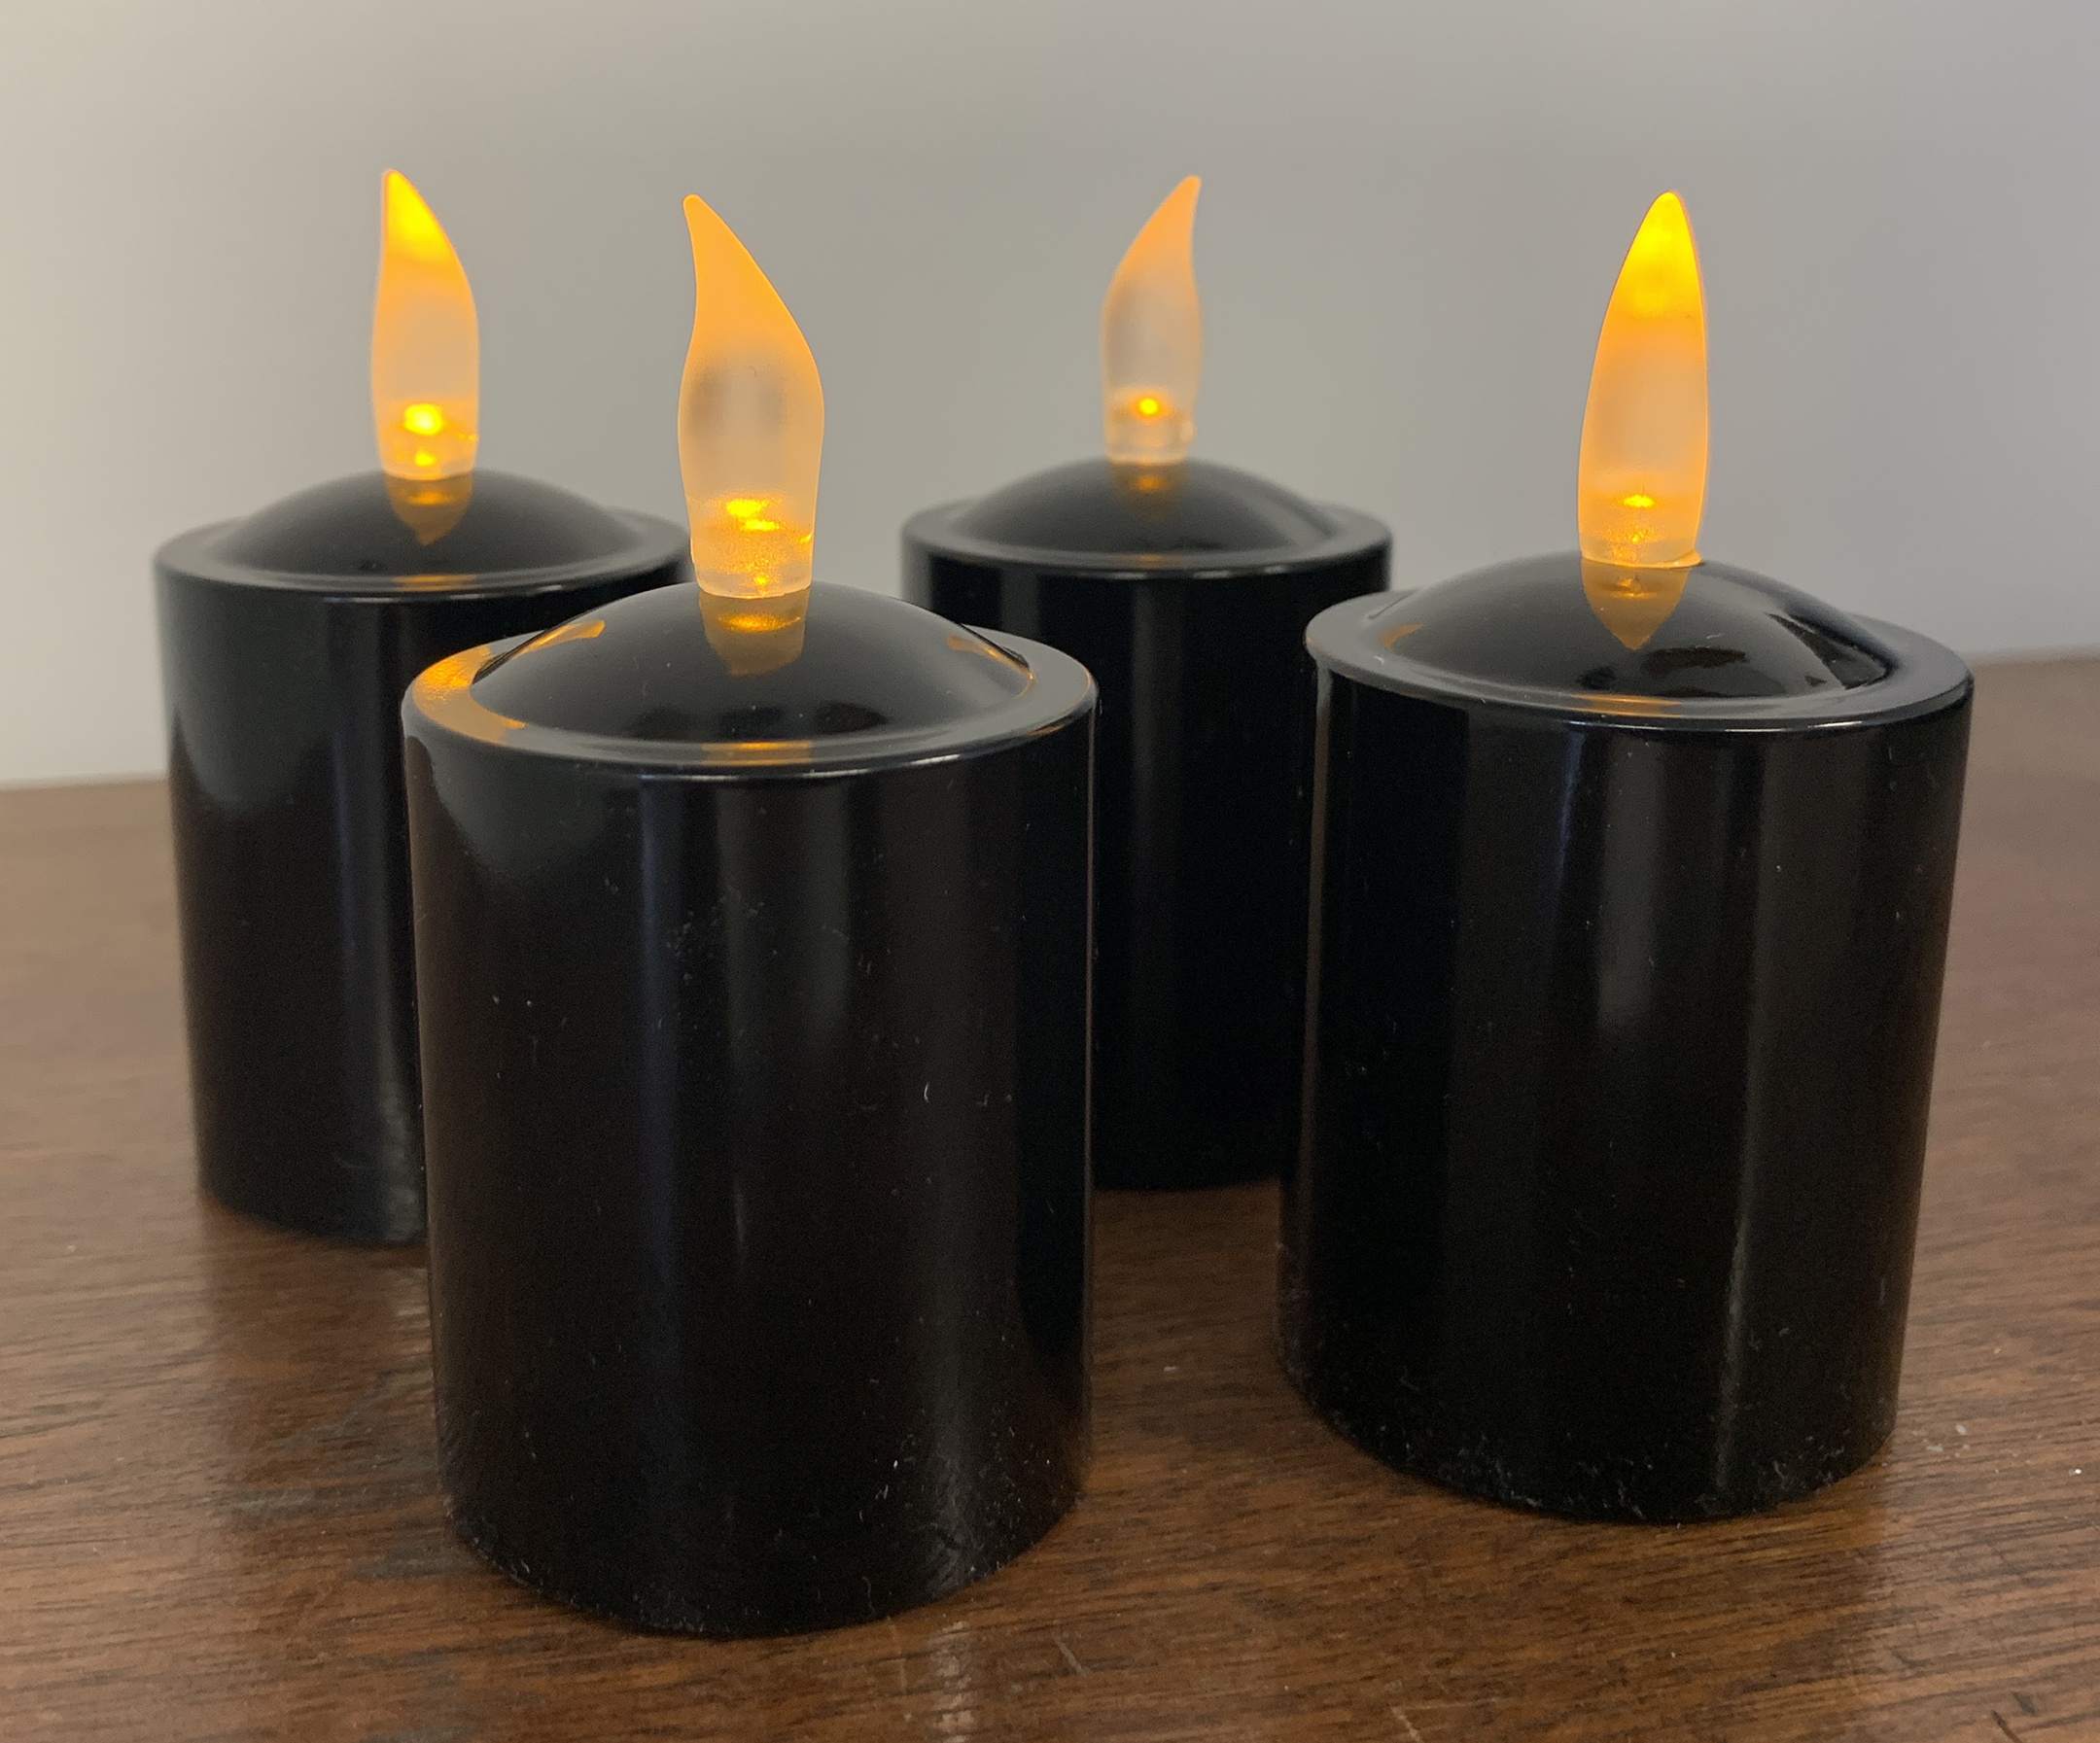 Set of 4 Spooky Black Votive Candles with Flickering Amber LEDs